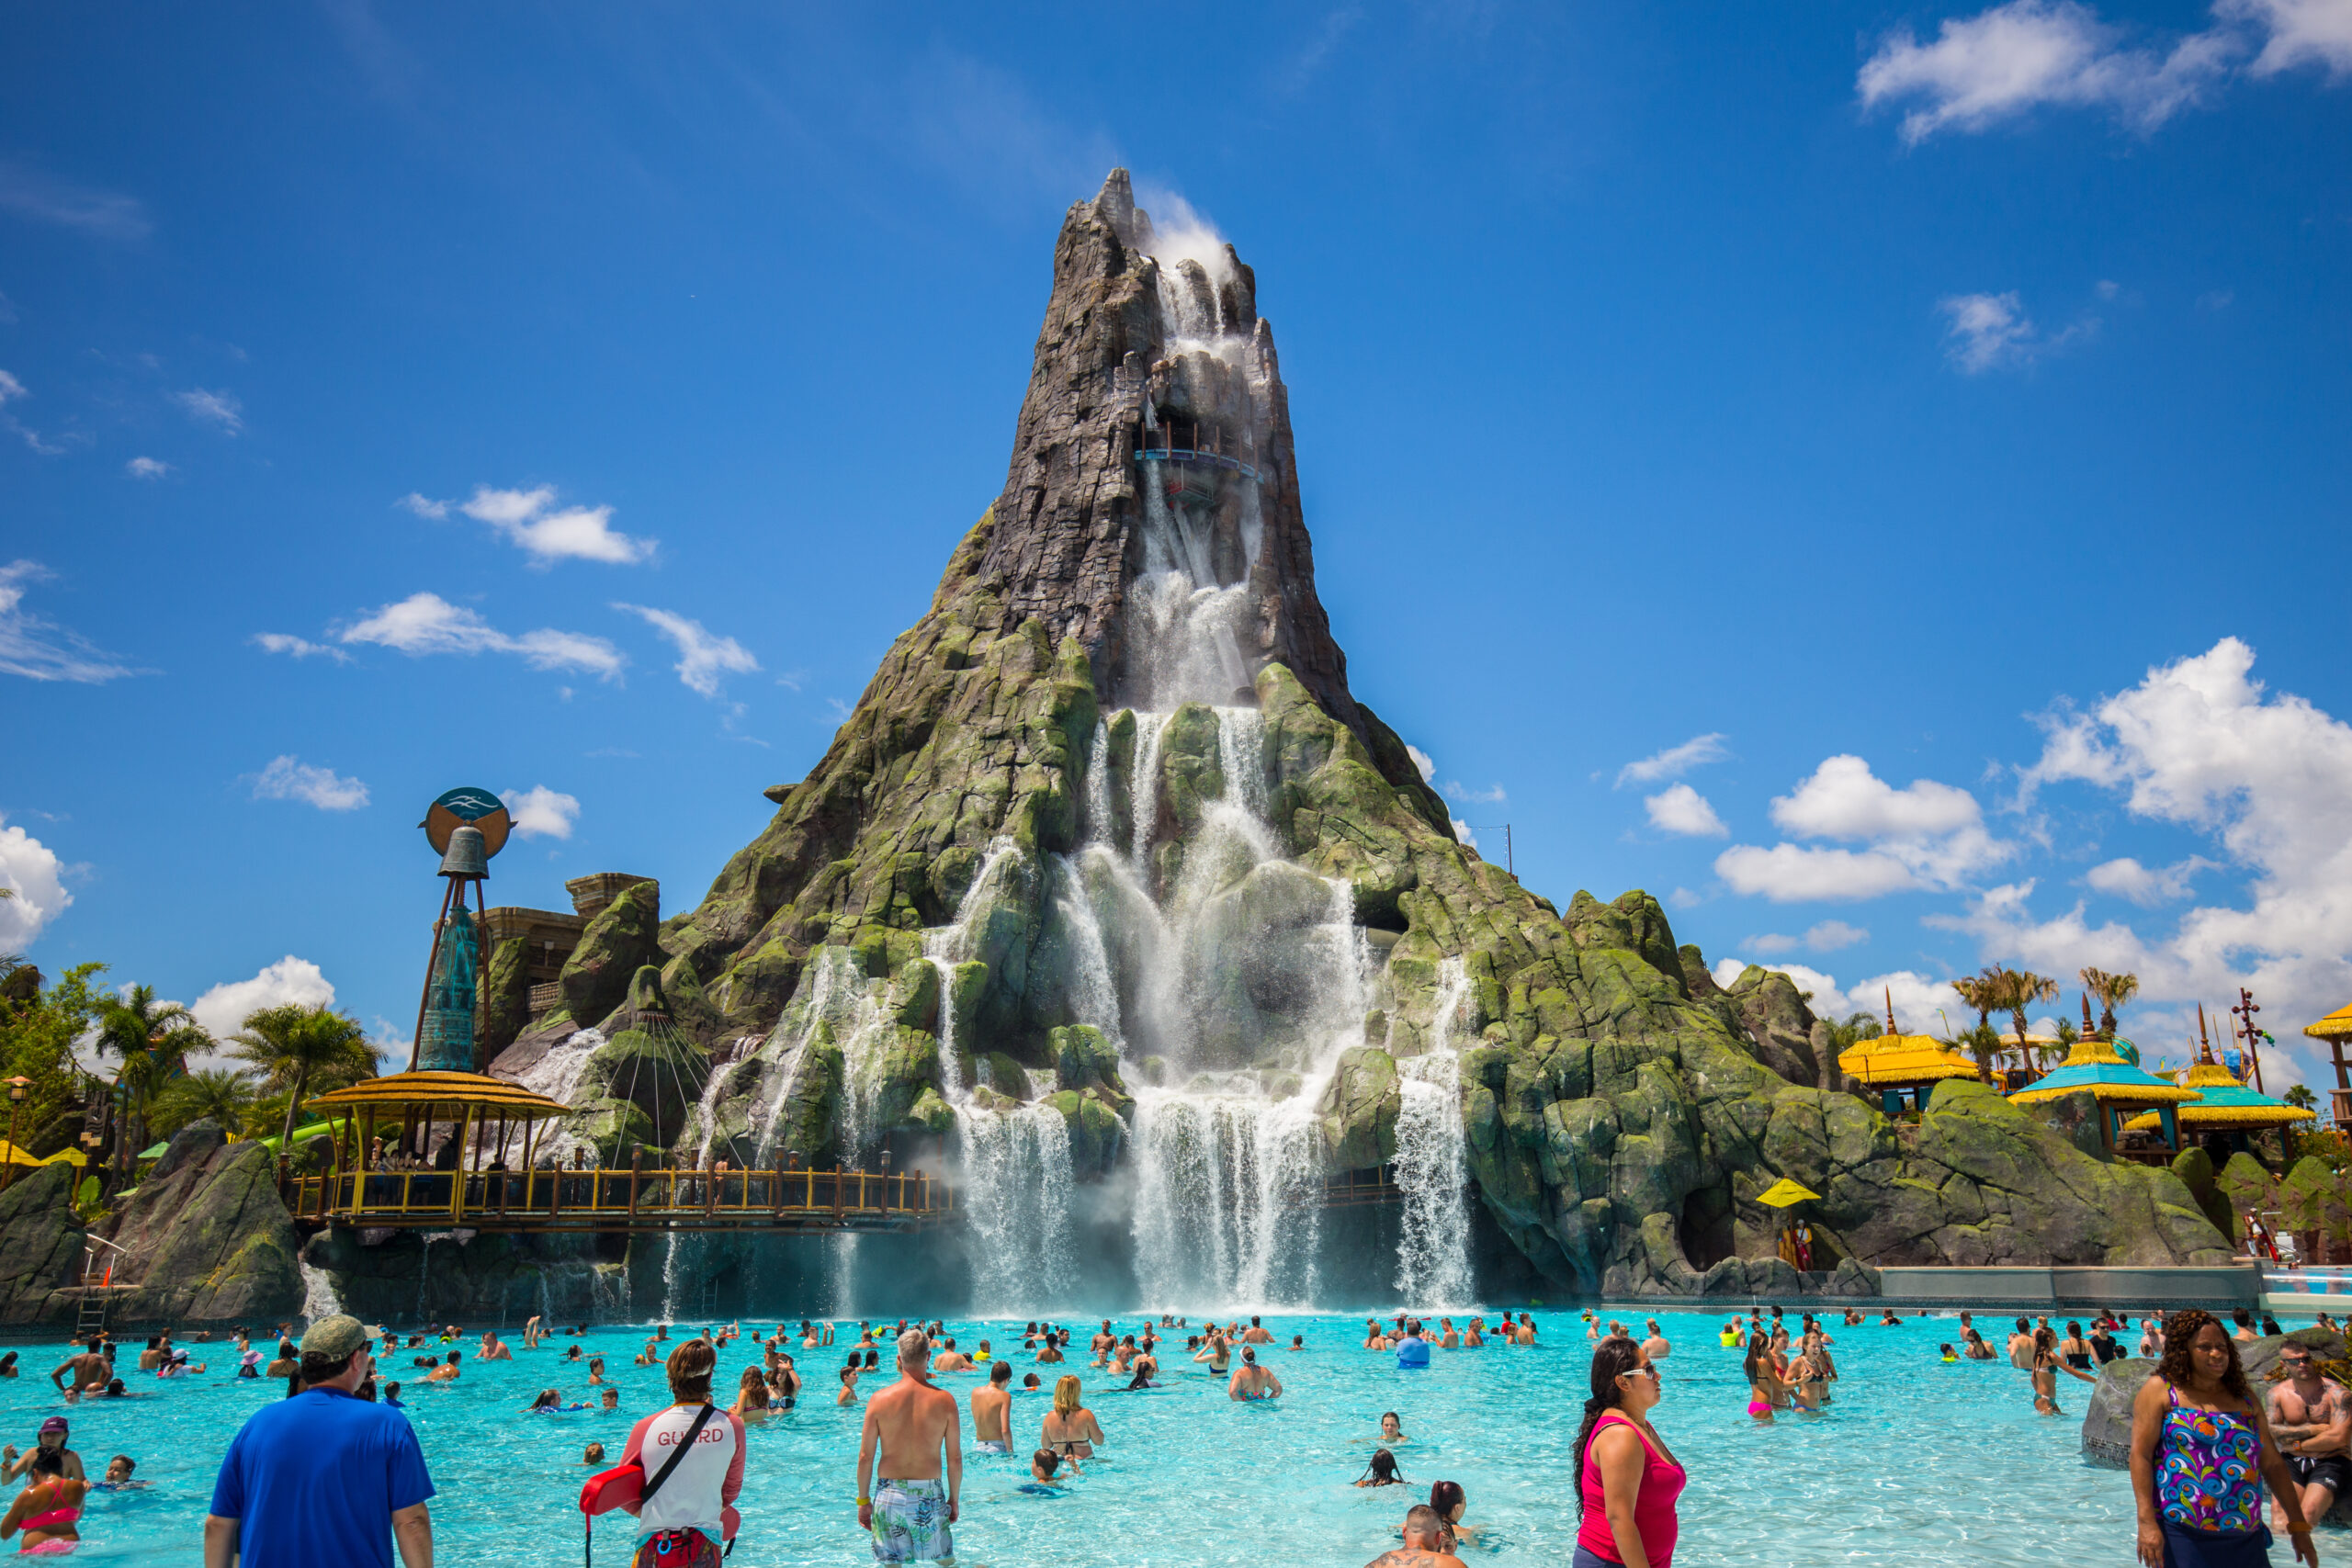 Things to do in orlando florida for couples scaled